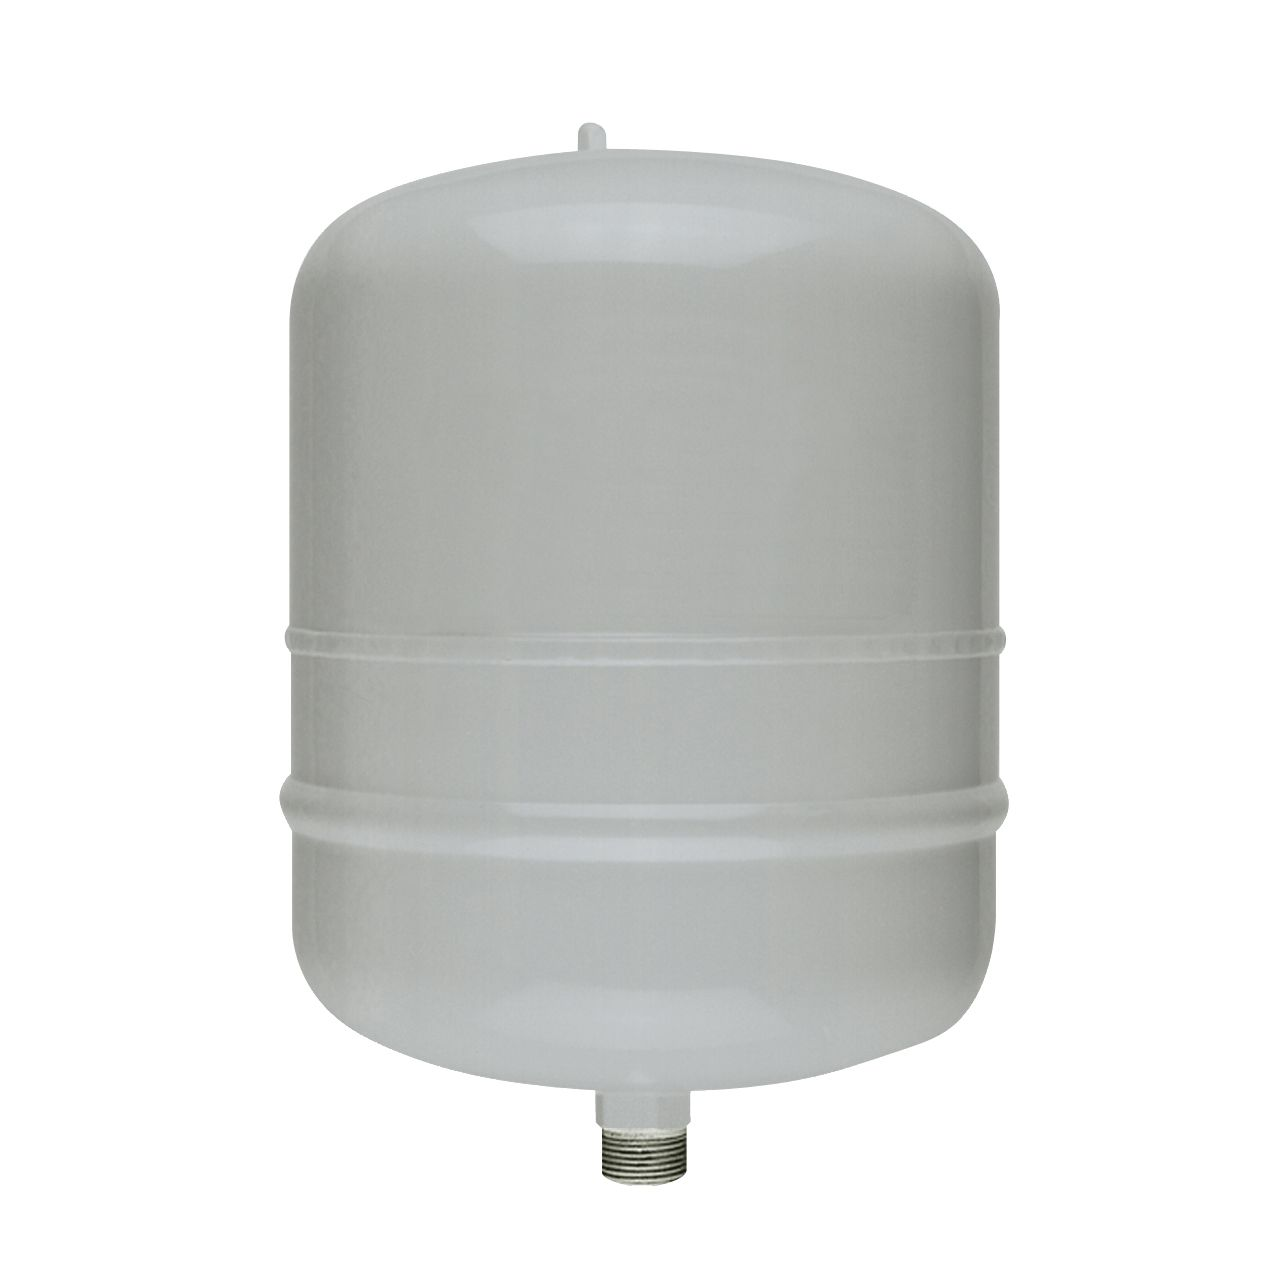 Kenmore 2 gal. Thermal Expansion Tank